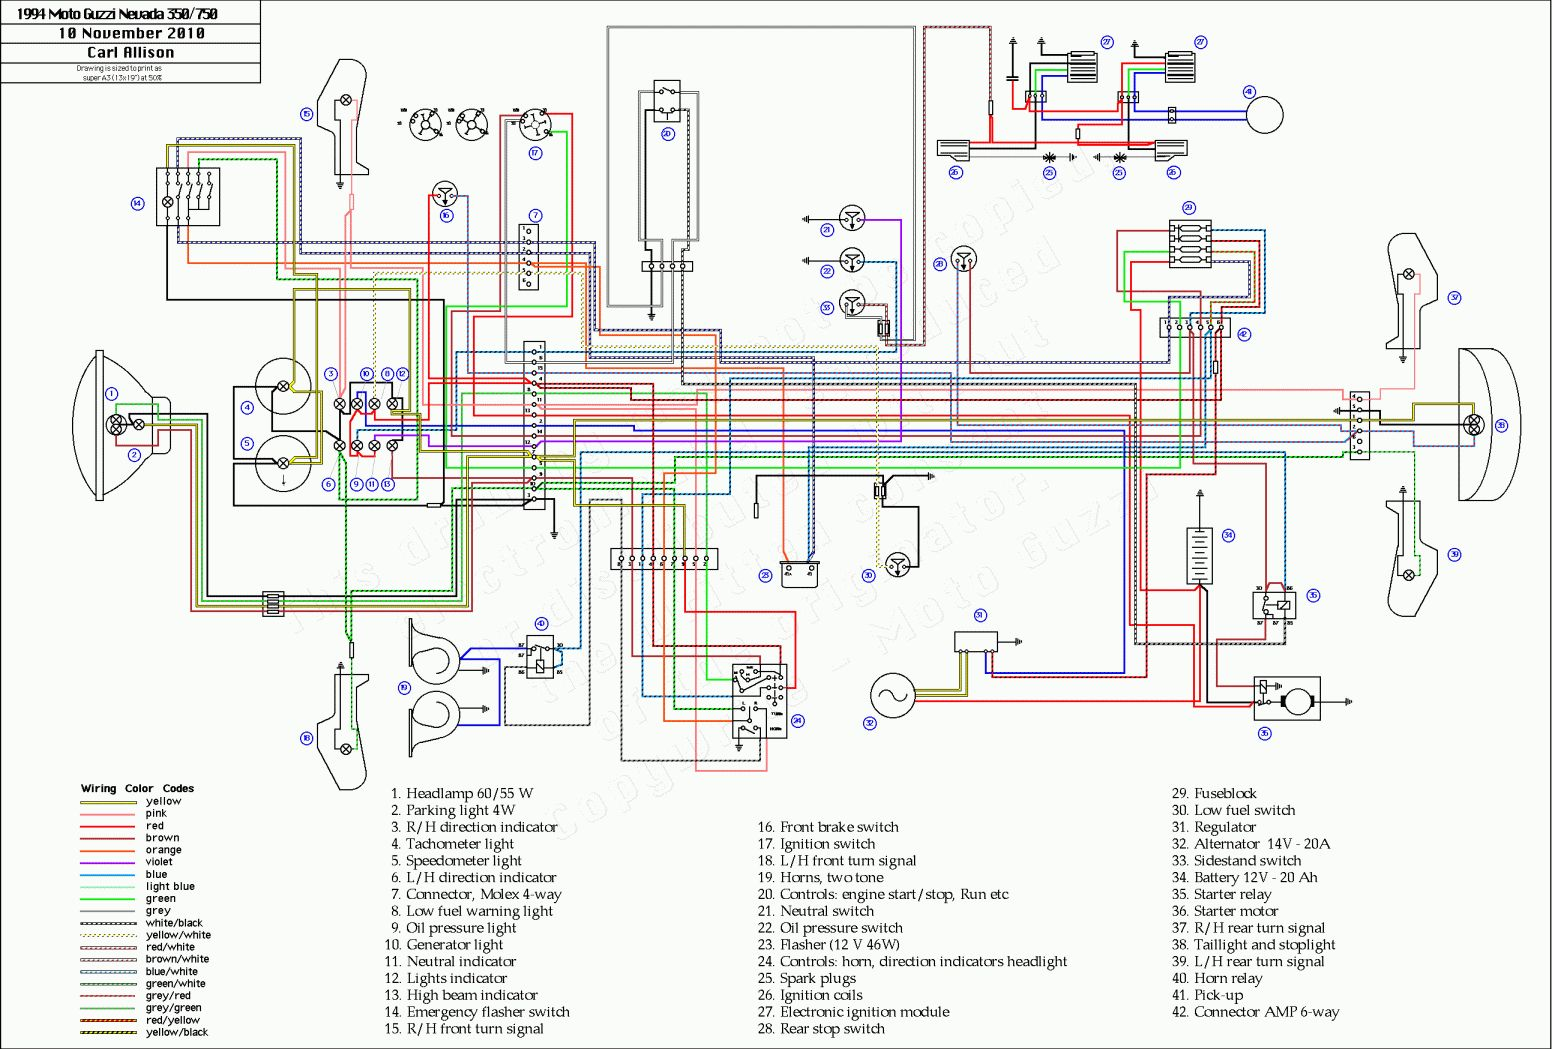 10 Yamaha V50 Motorcycle Wiring Diagram Motorcycle Diagram Wiringg Net In 2020 Electrical Diagram Diagram Diagram Design